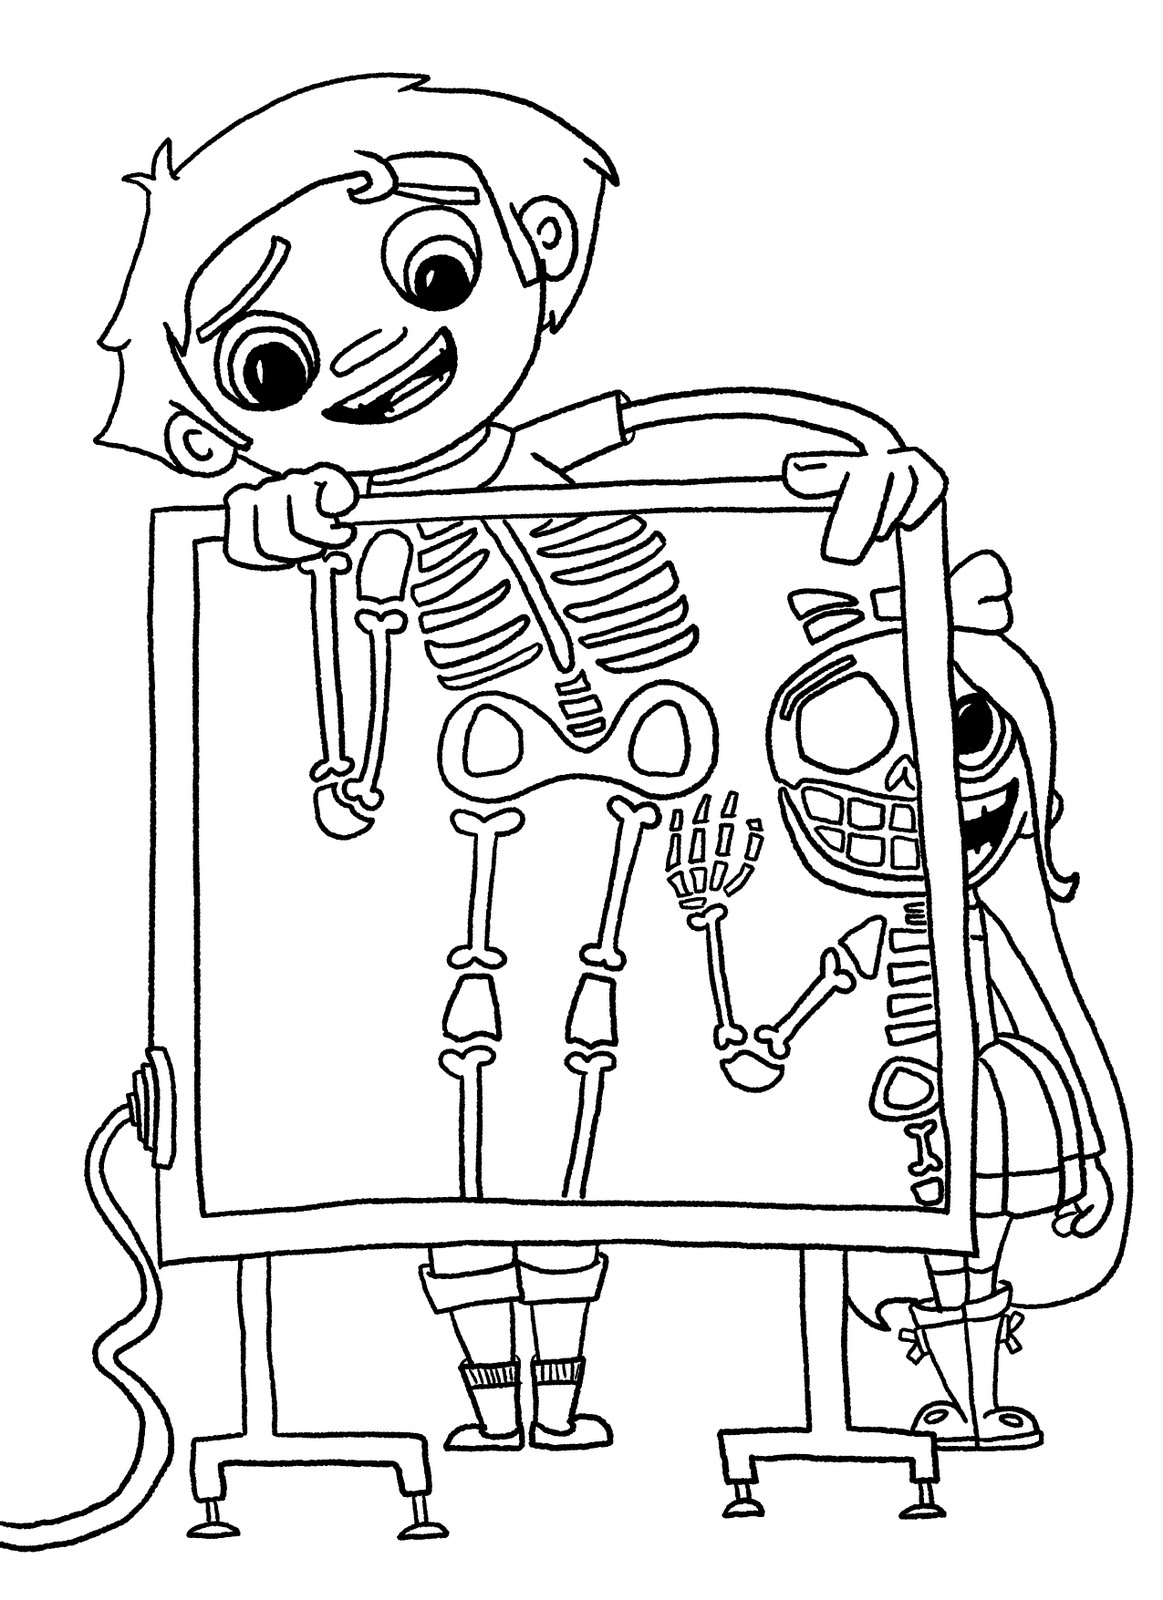 Radiology Coloring Pages Coloring Pages